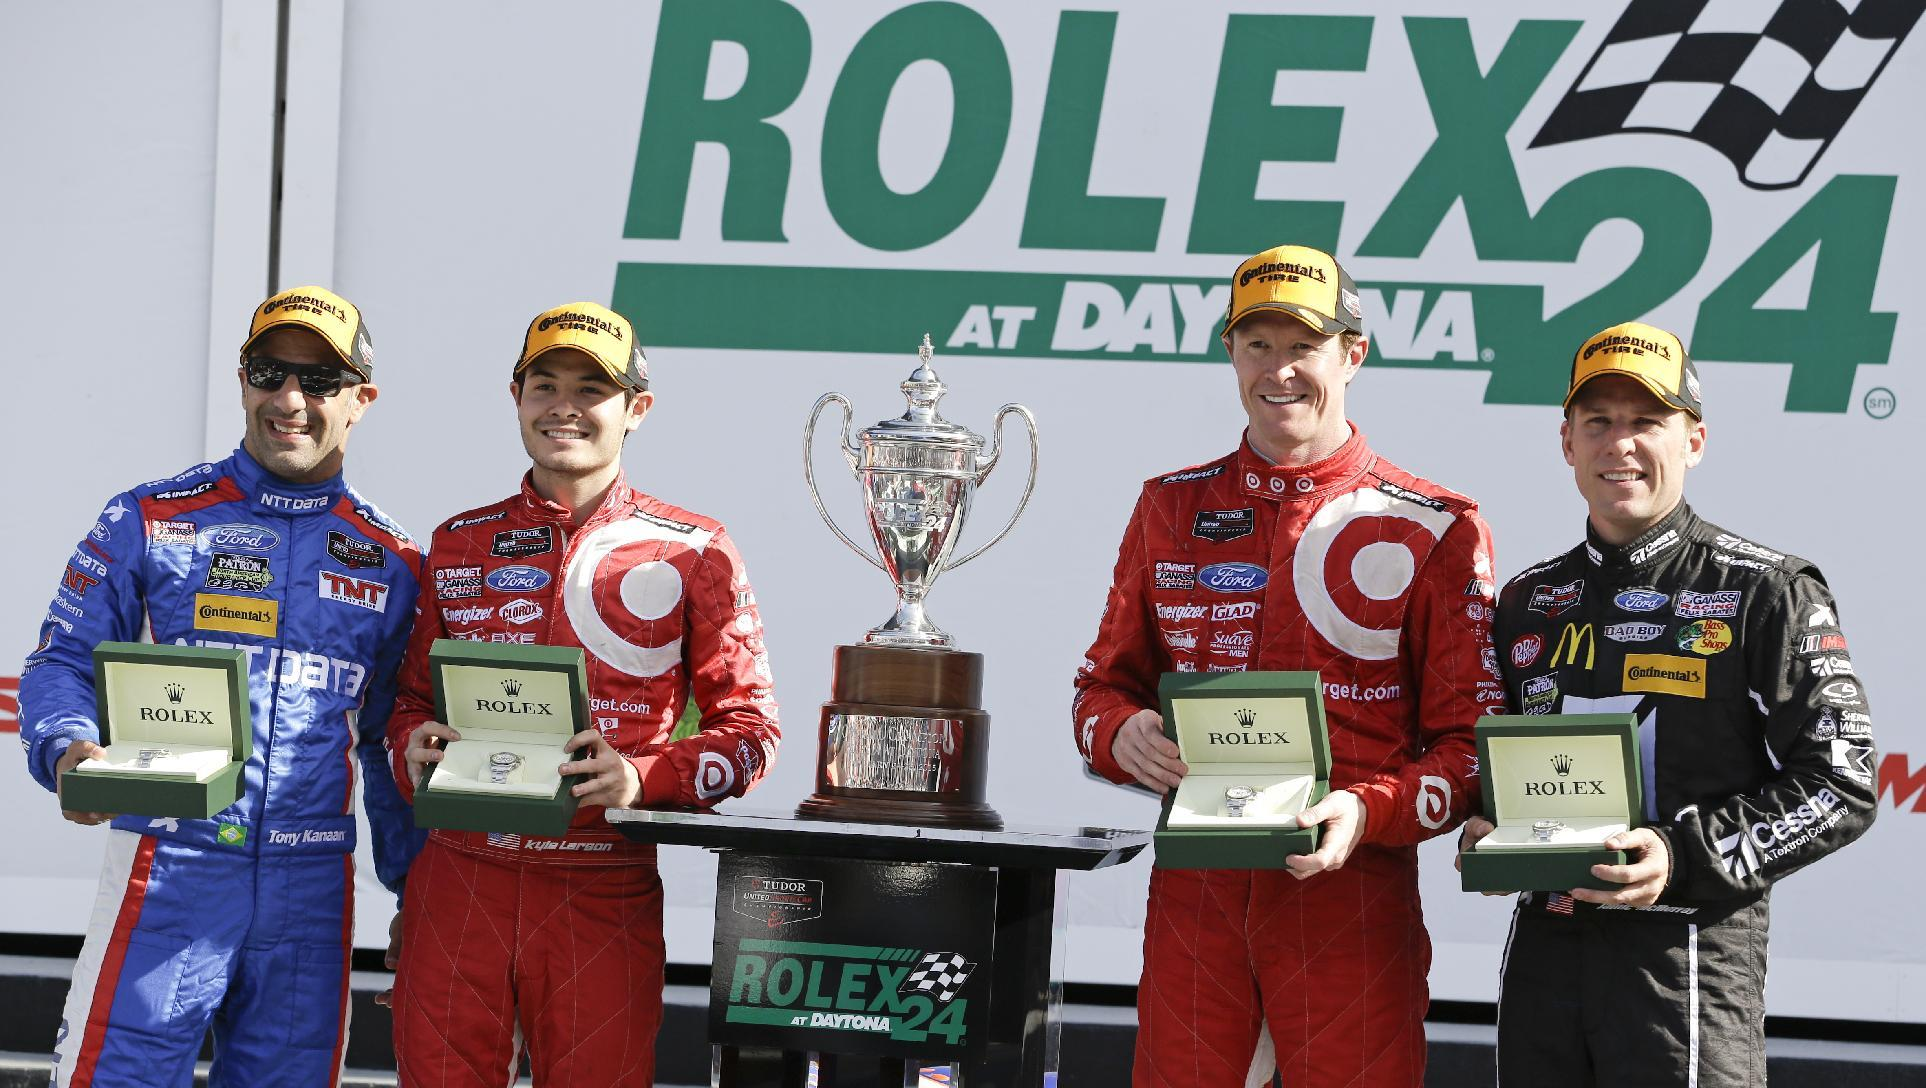 Chip Ganassi Racing's 'star car' wins Rolex 24 at Daytona